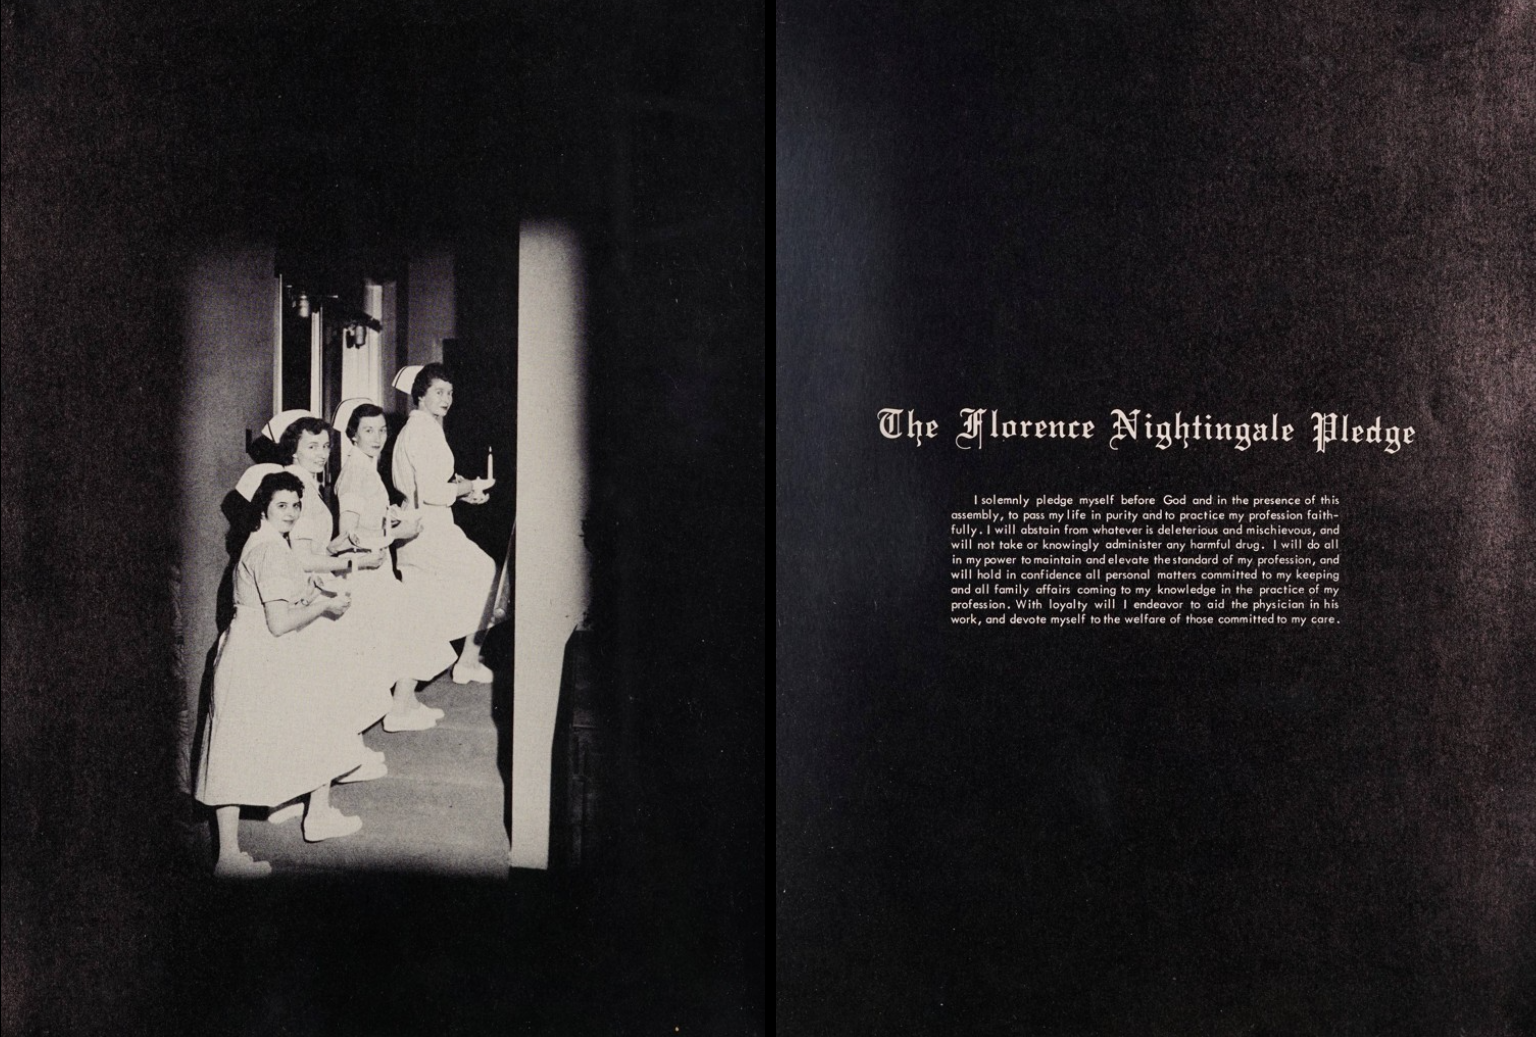 Two pages of the yearbook. The left side shows four nurses holding candles ascending a staircase with a spotlight on them. The right side of the page has The Florence Nightingale Pledge.